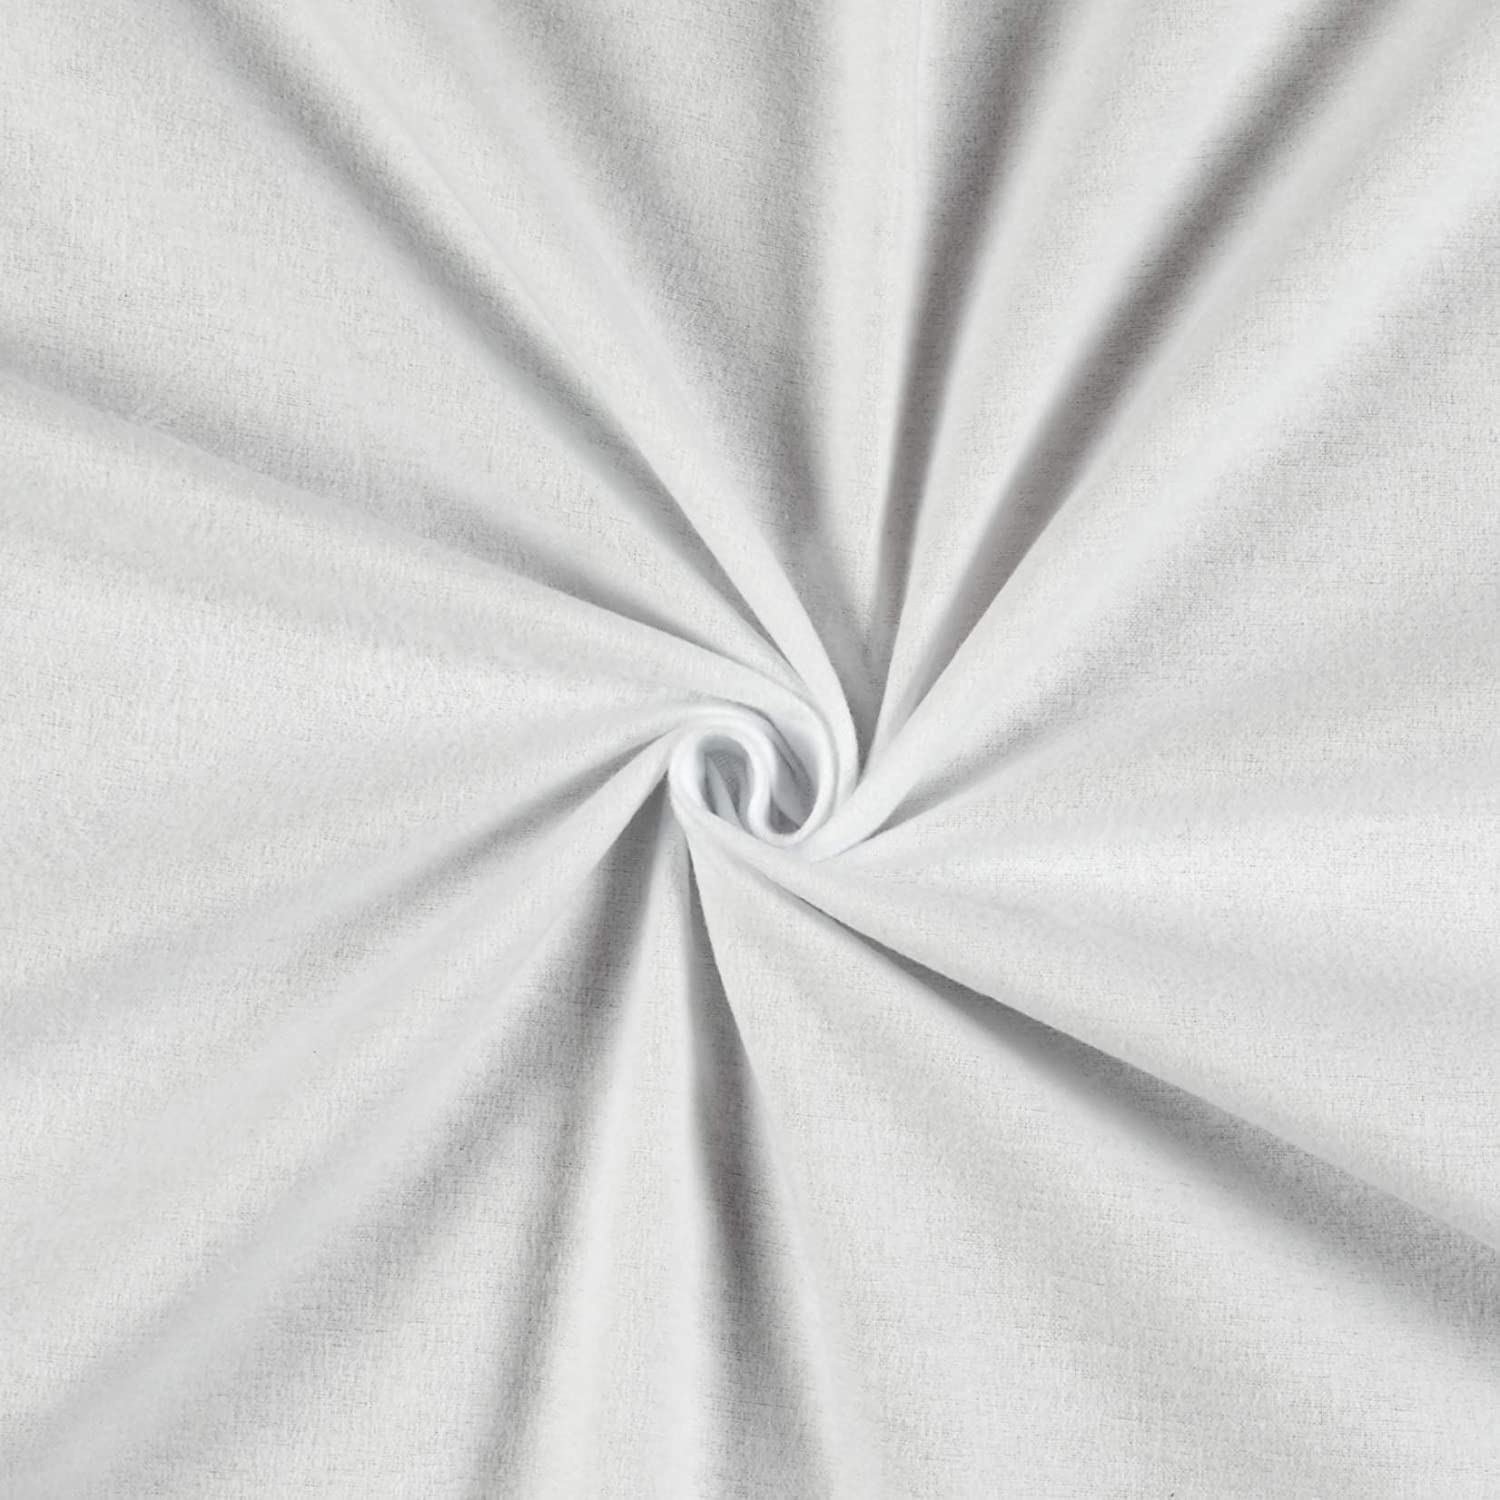 5 Yard Fabric Cotton Voile Sewing Loose  Fabric Light Weight Plain Off-White